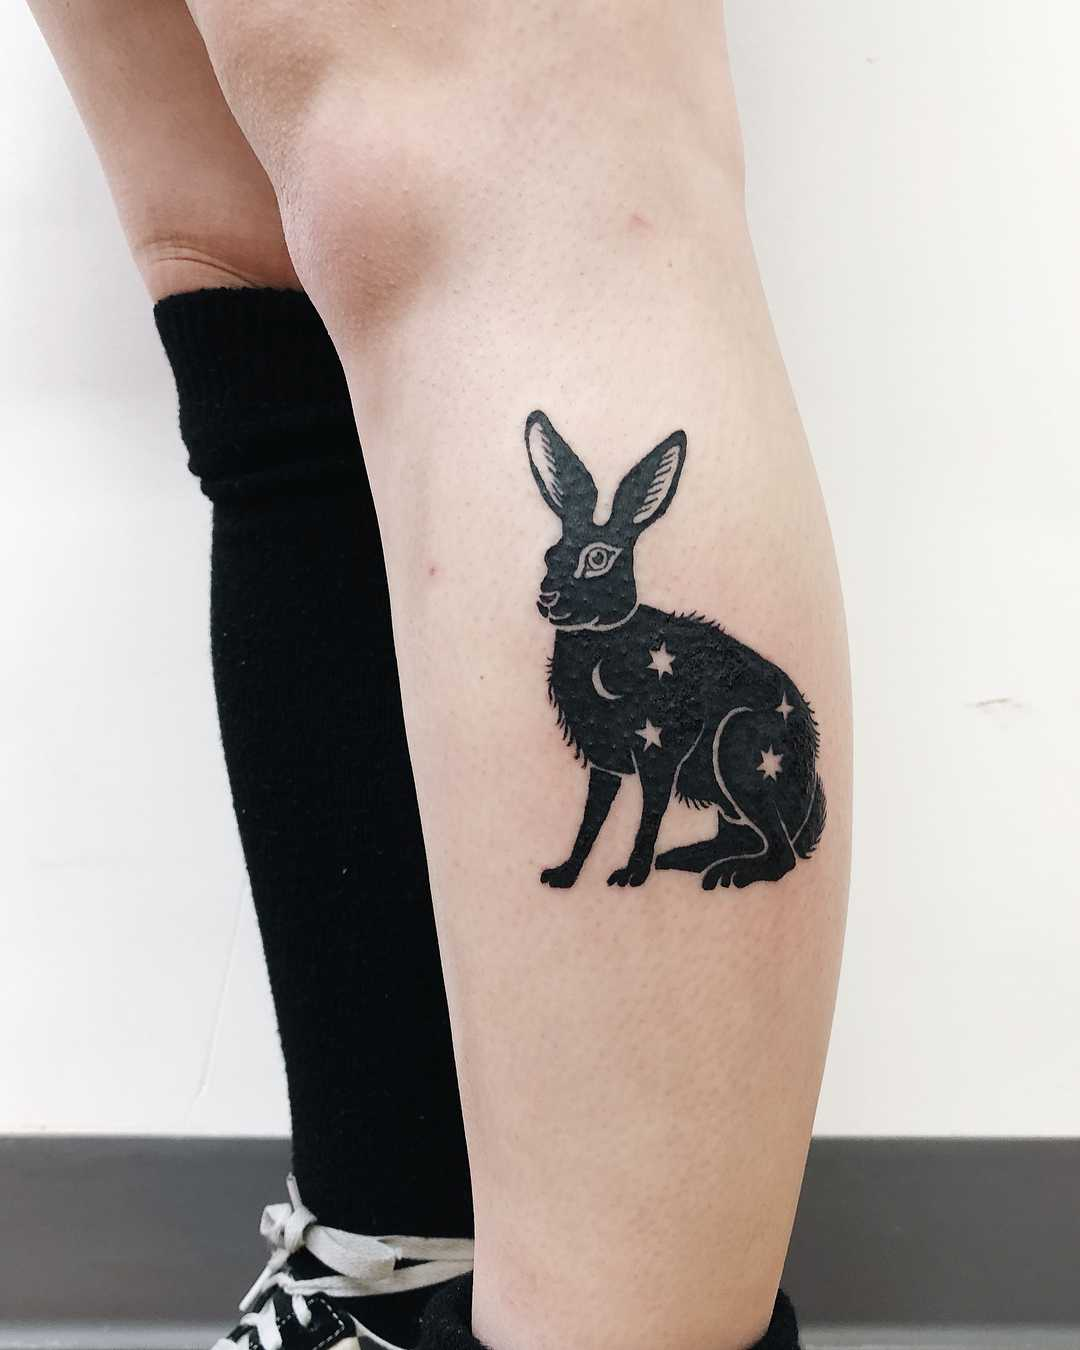 A shadow rabbit filled with sky